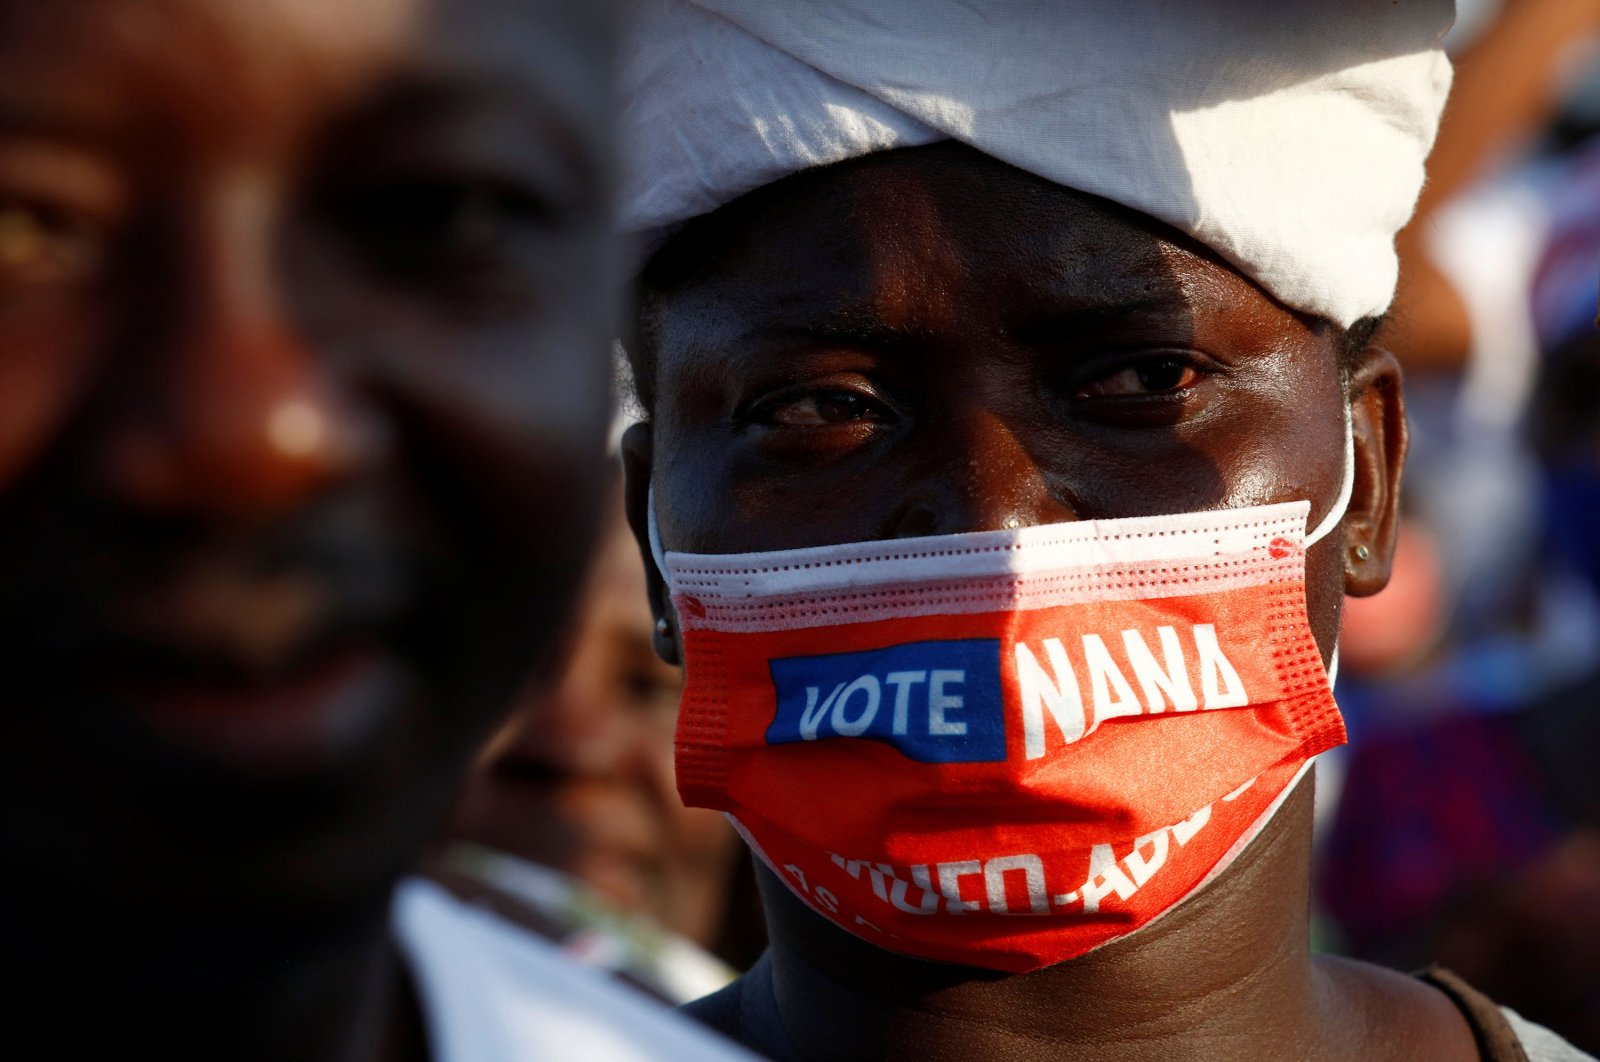 A supporter of Ghana's President Nana Akufo-Addo attends the final electoral campaign ahead of the presidential and parliamentary elections, in Accra, Ghana Dec. 5, 2020. (Reuters Photo)